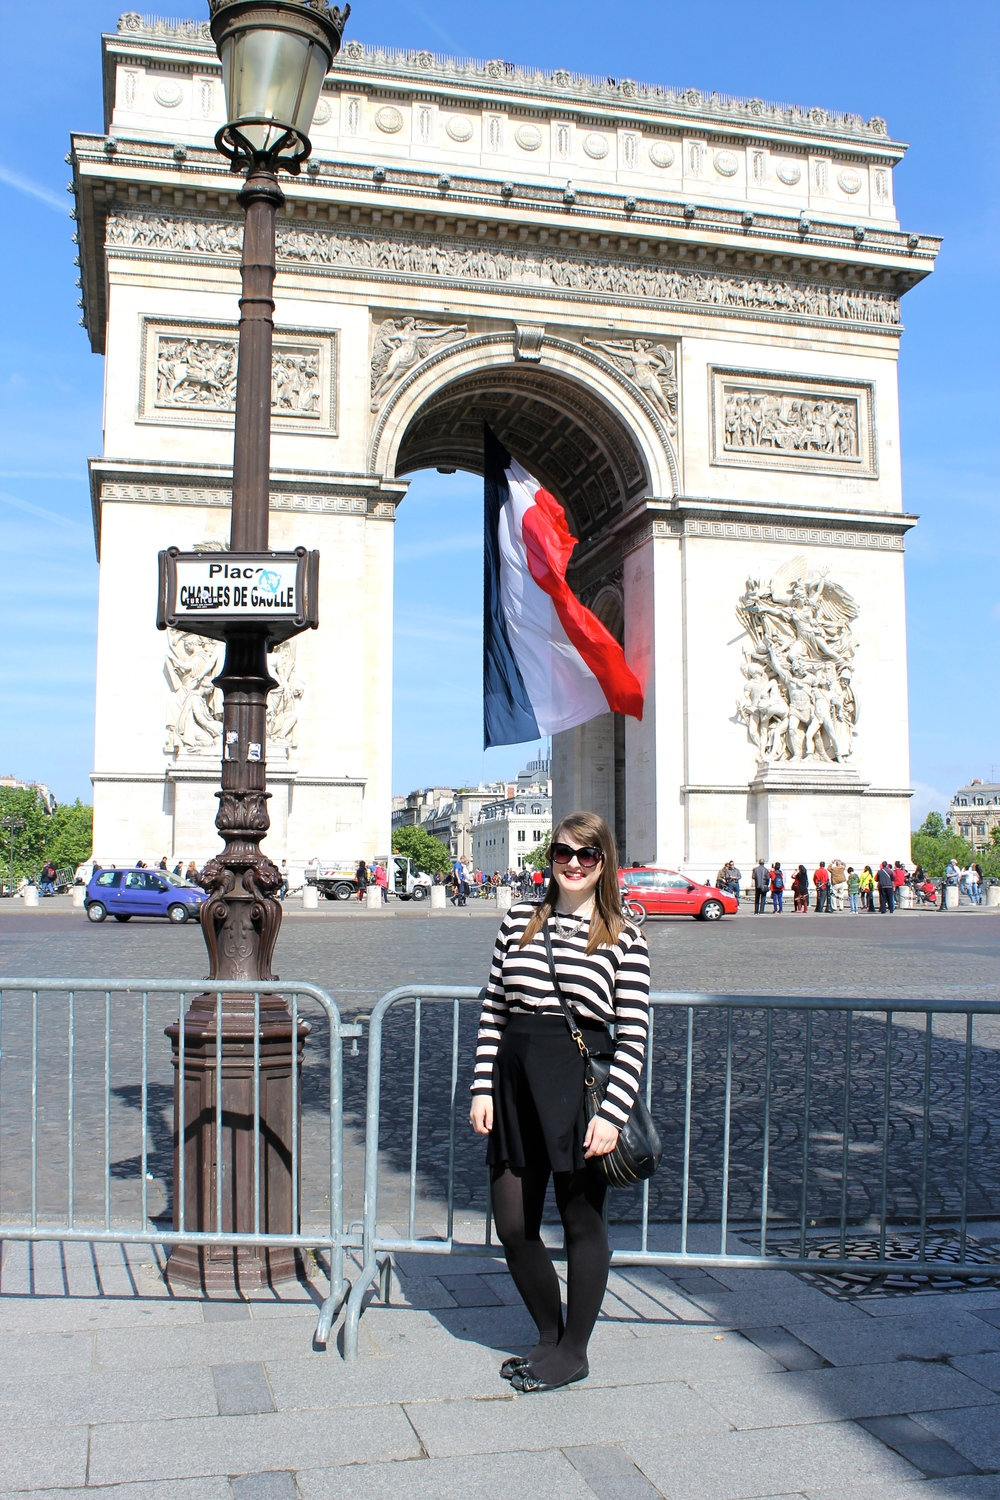 After our half day in Paris on the 16th, we set out the next day to see all of the land marks. We got off the metro at the Champs d'Elysees stop and the Arc de Triomphe was majestically awaiting us. So gorgeous!